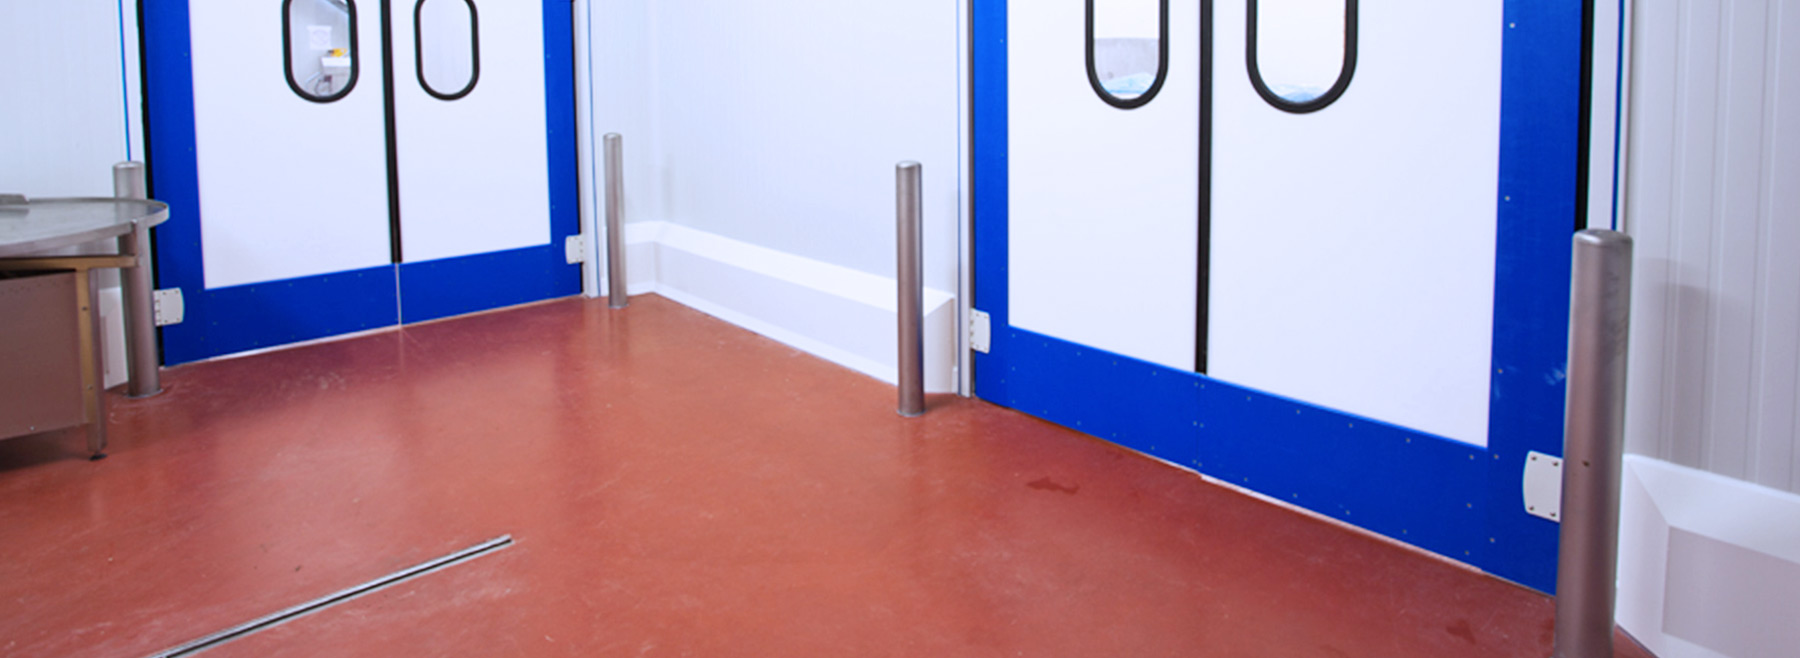 HygiDoor with protecting poles